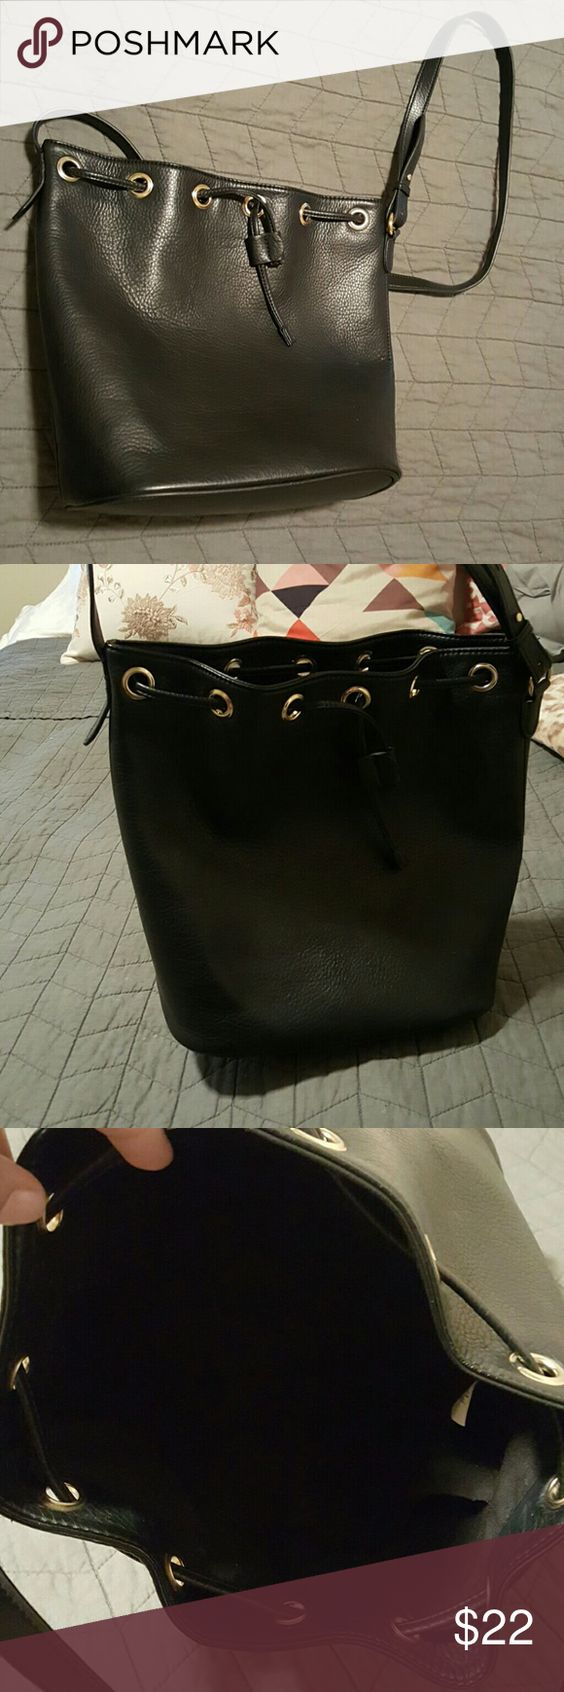 Bucket bag-handbag From old navy, stimulated leather, black, plush & fabulous for a non leather bag, roomy, could wear crossbody or shoulder. EUC Old Navy Bags Shoulder Bags